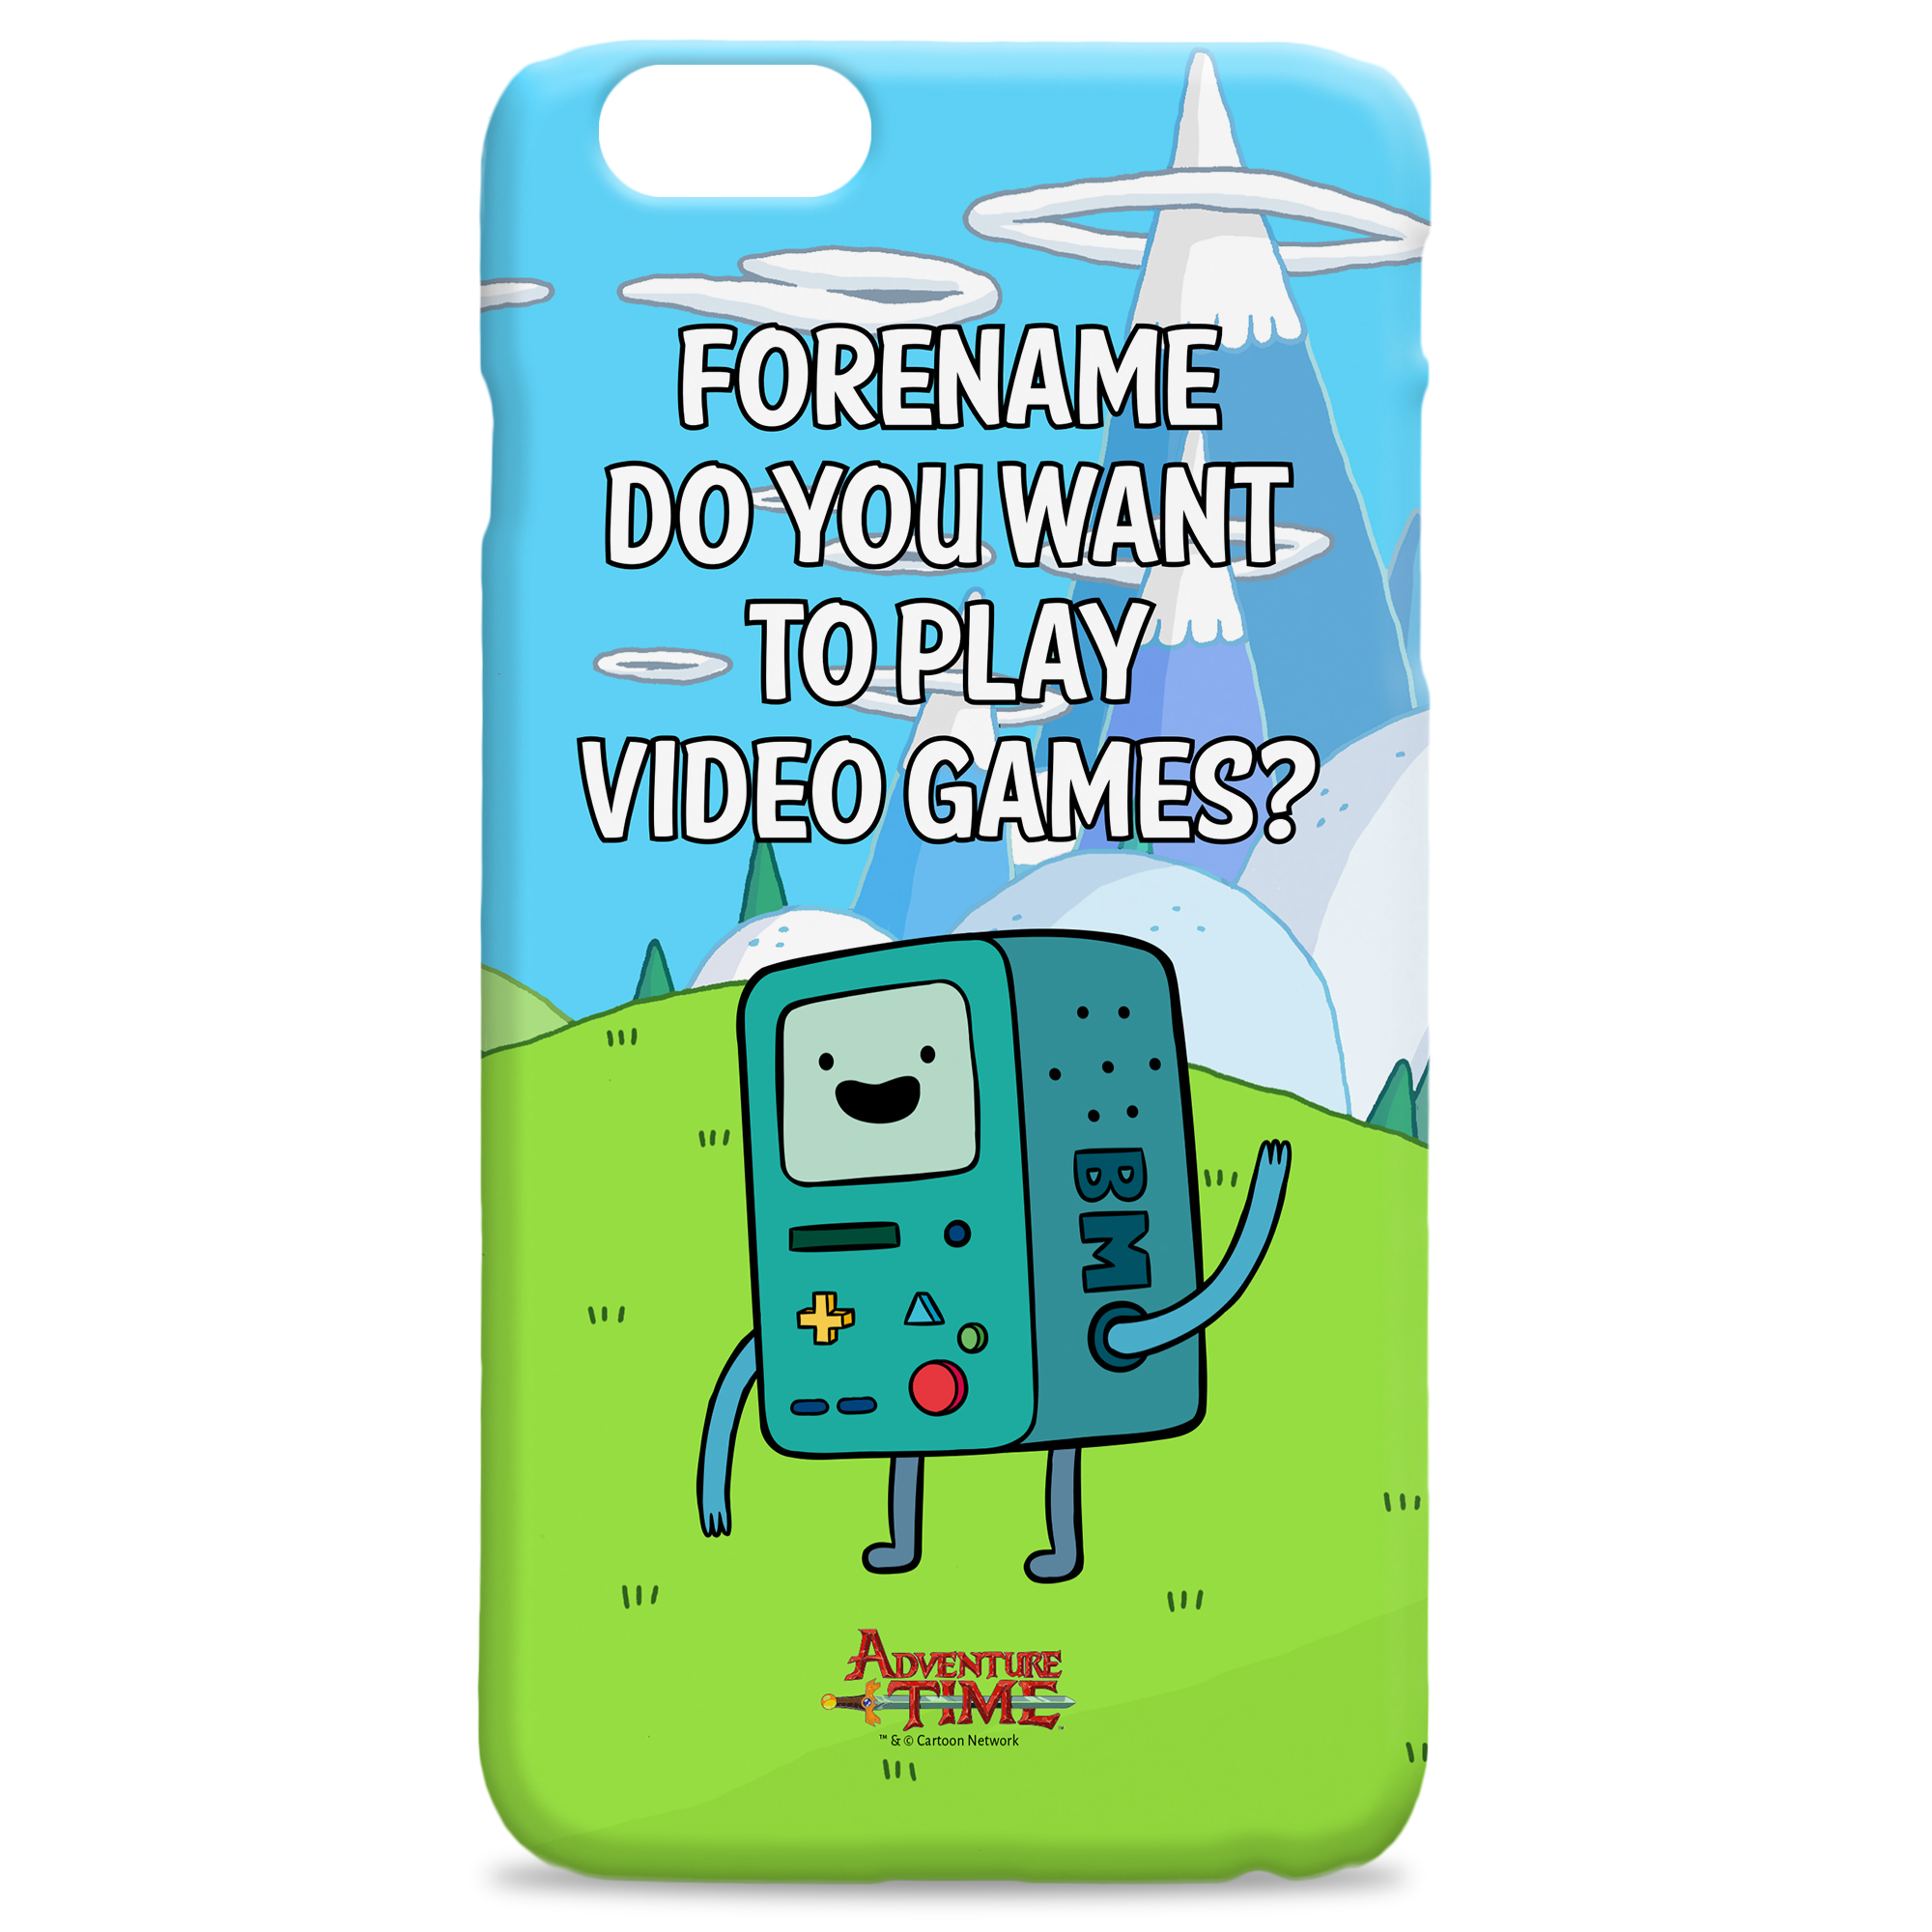 Adventure Time Video Games iPhone Case